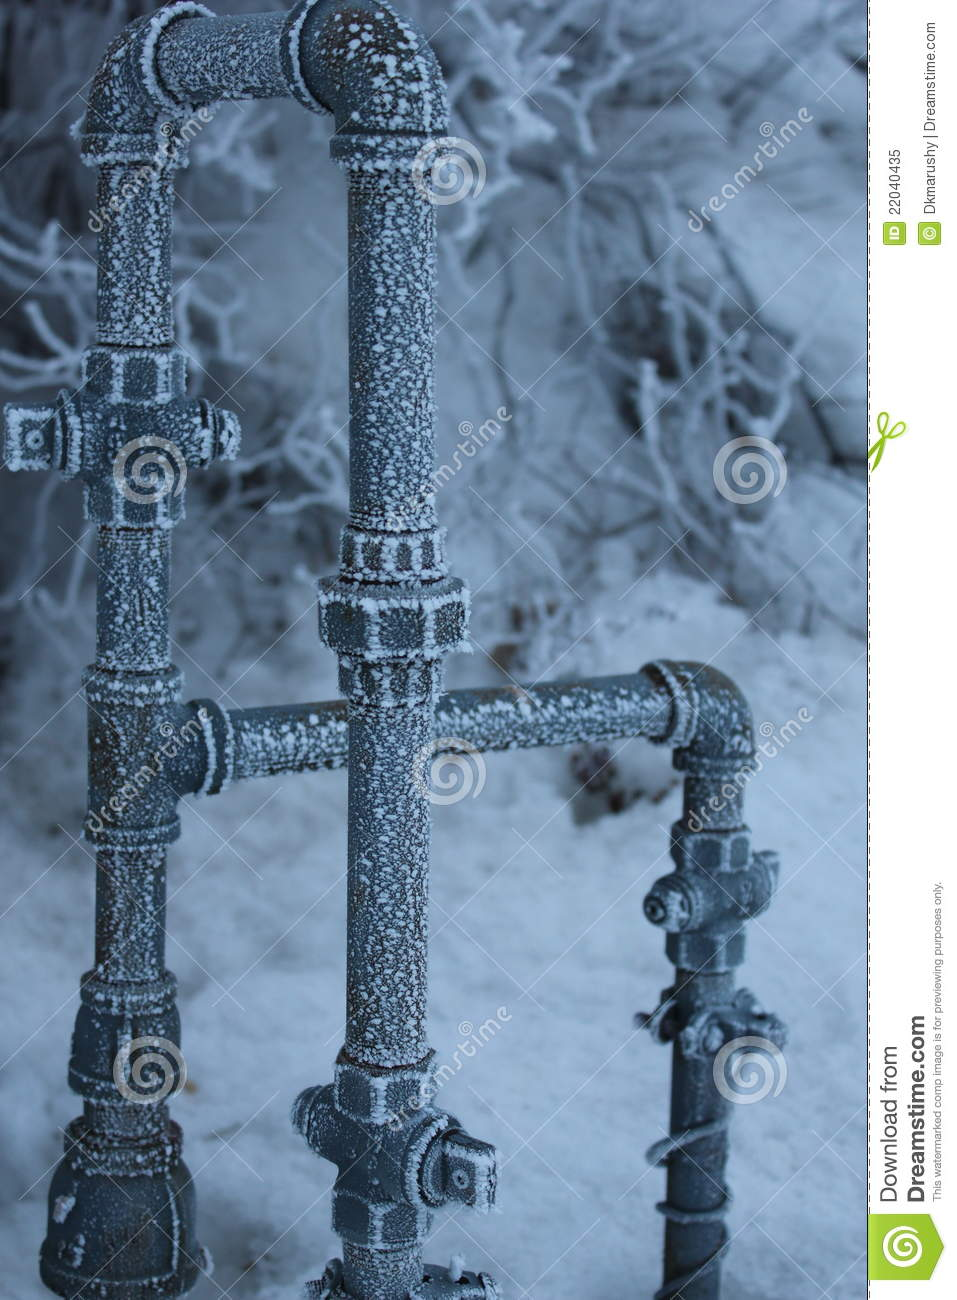 Frozen Pipes 2 Royalty Free Stock Photo Image 22040435